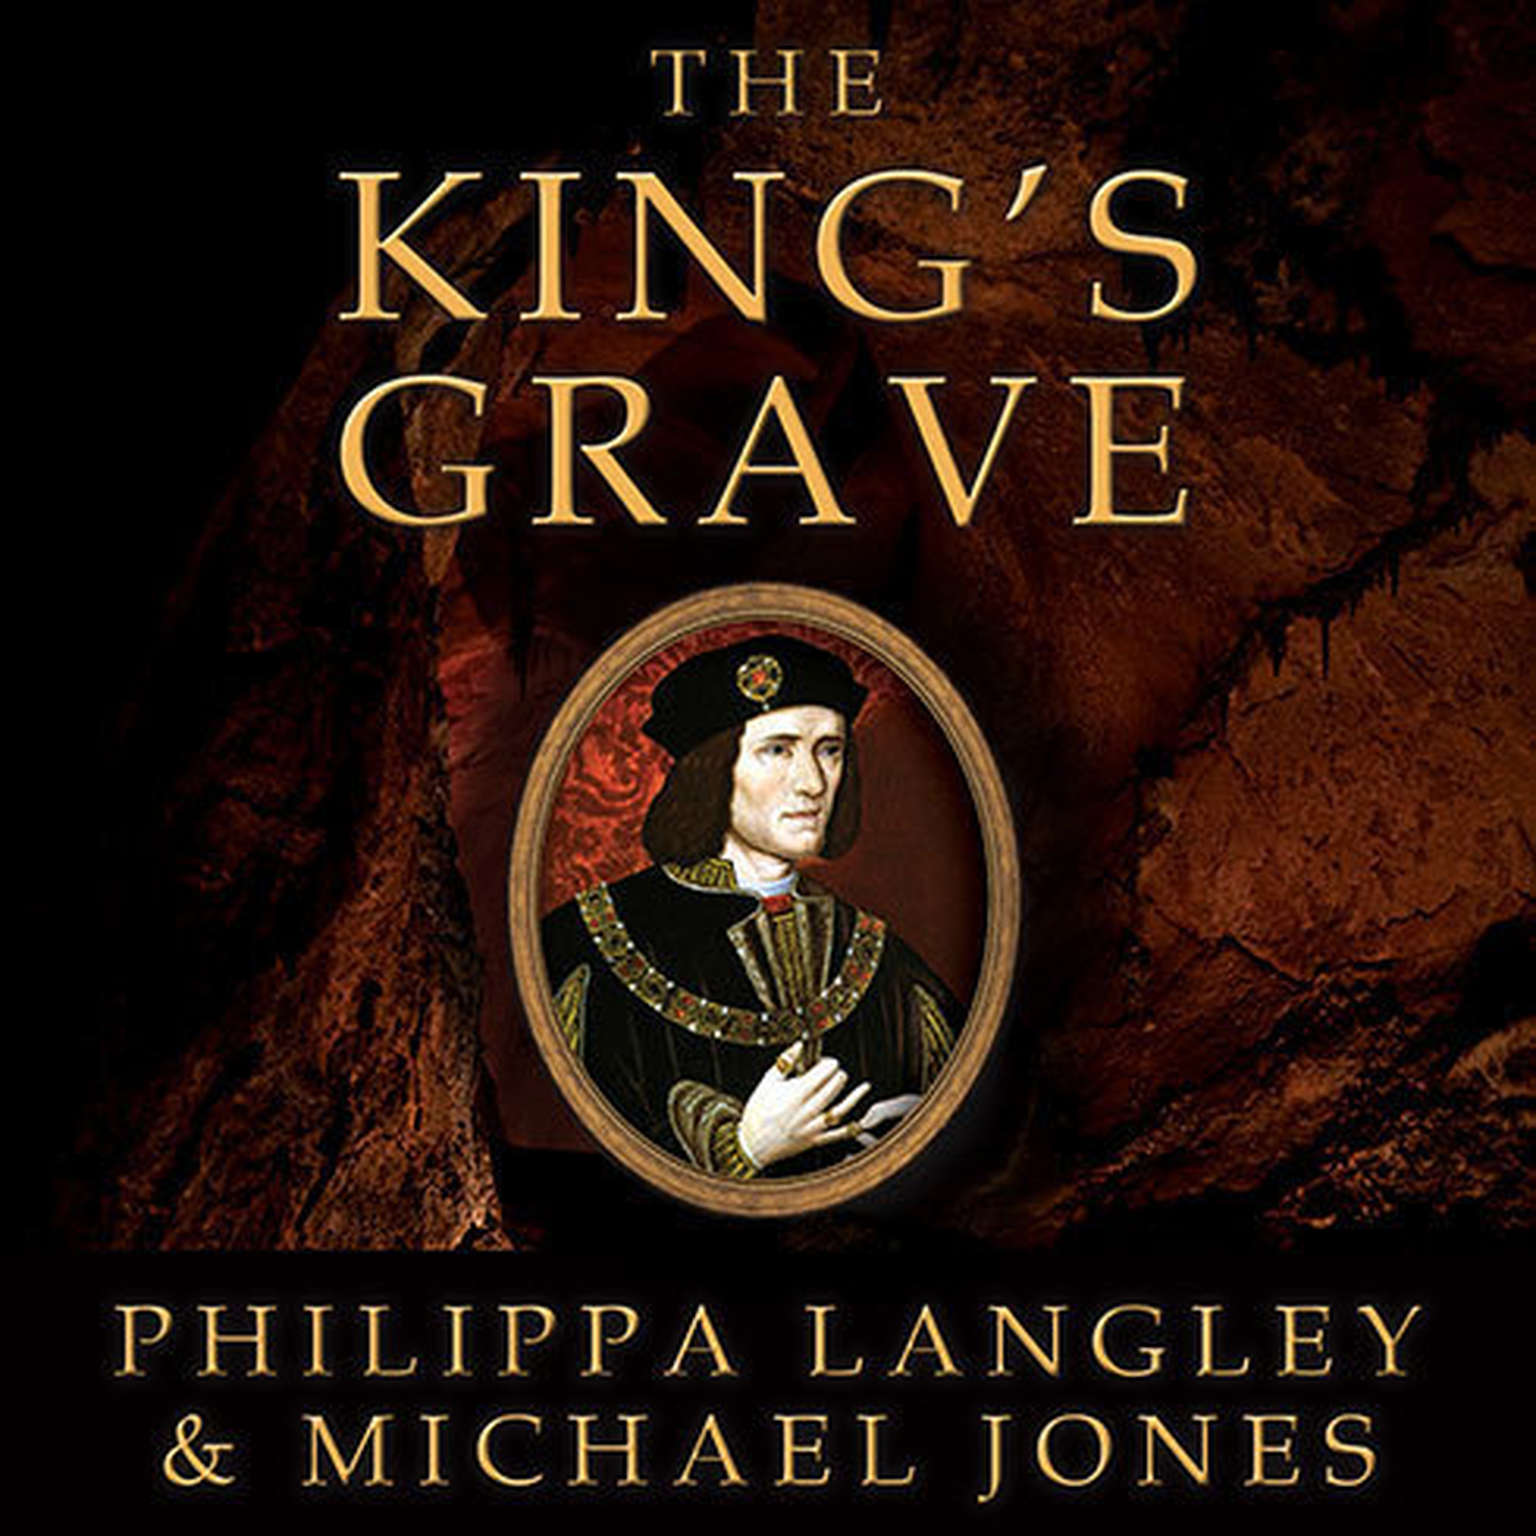 Printable The King's Grave: The Discovery of Richard III's Lost Burial Place and the Clues It Holds Audiobook Cover Art